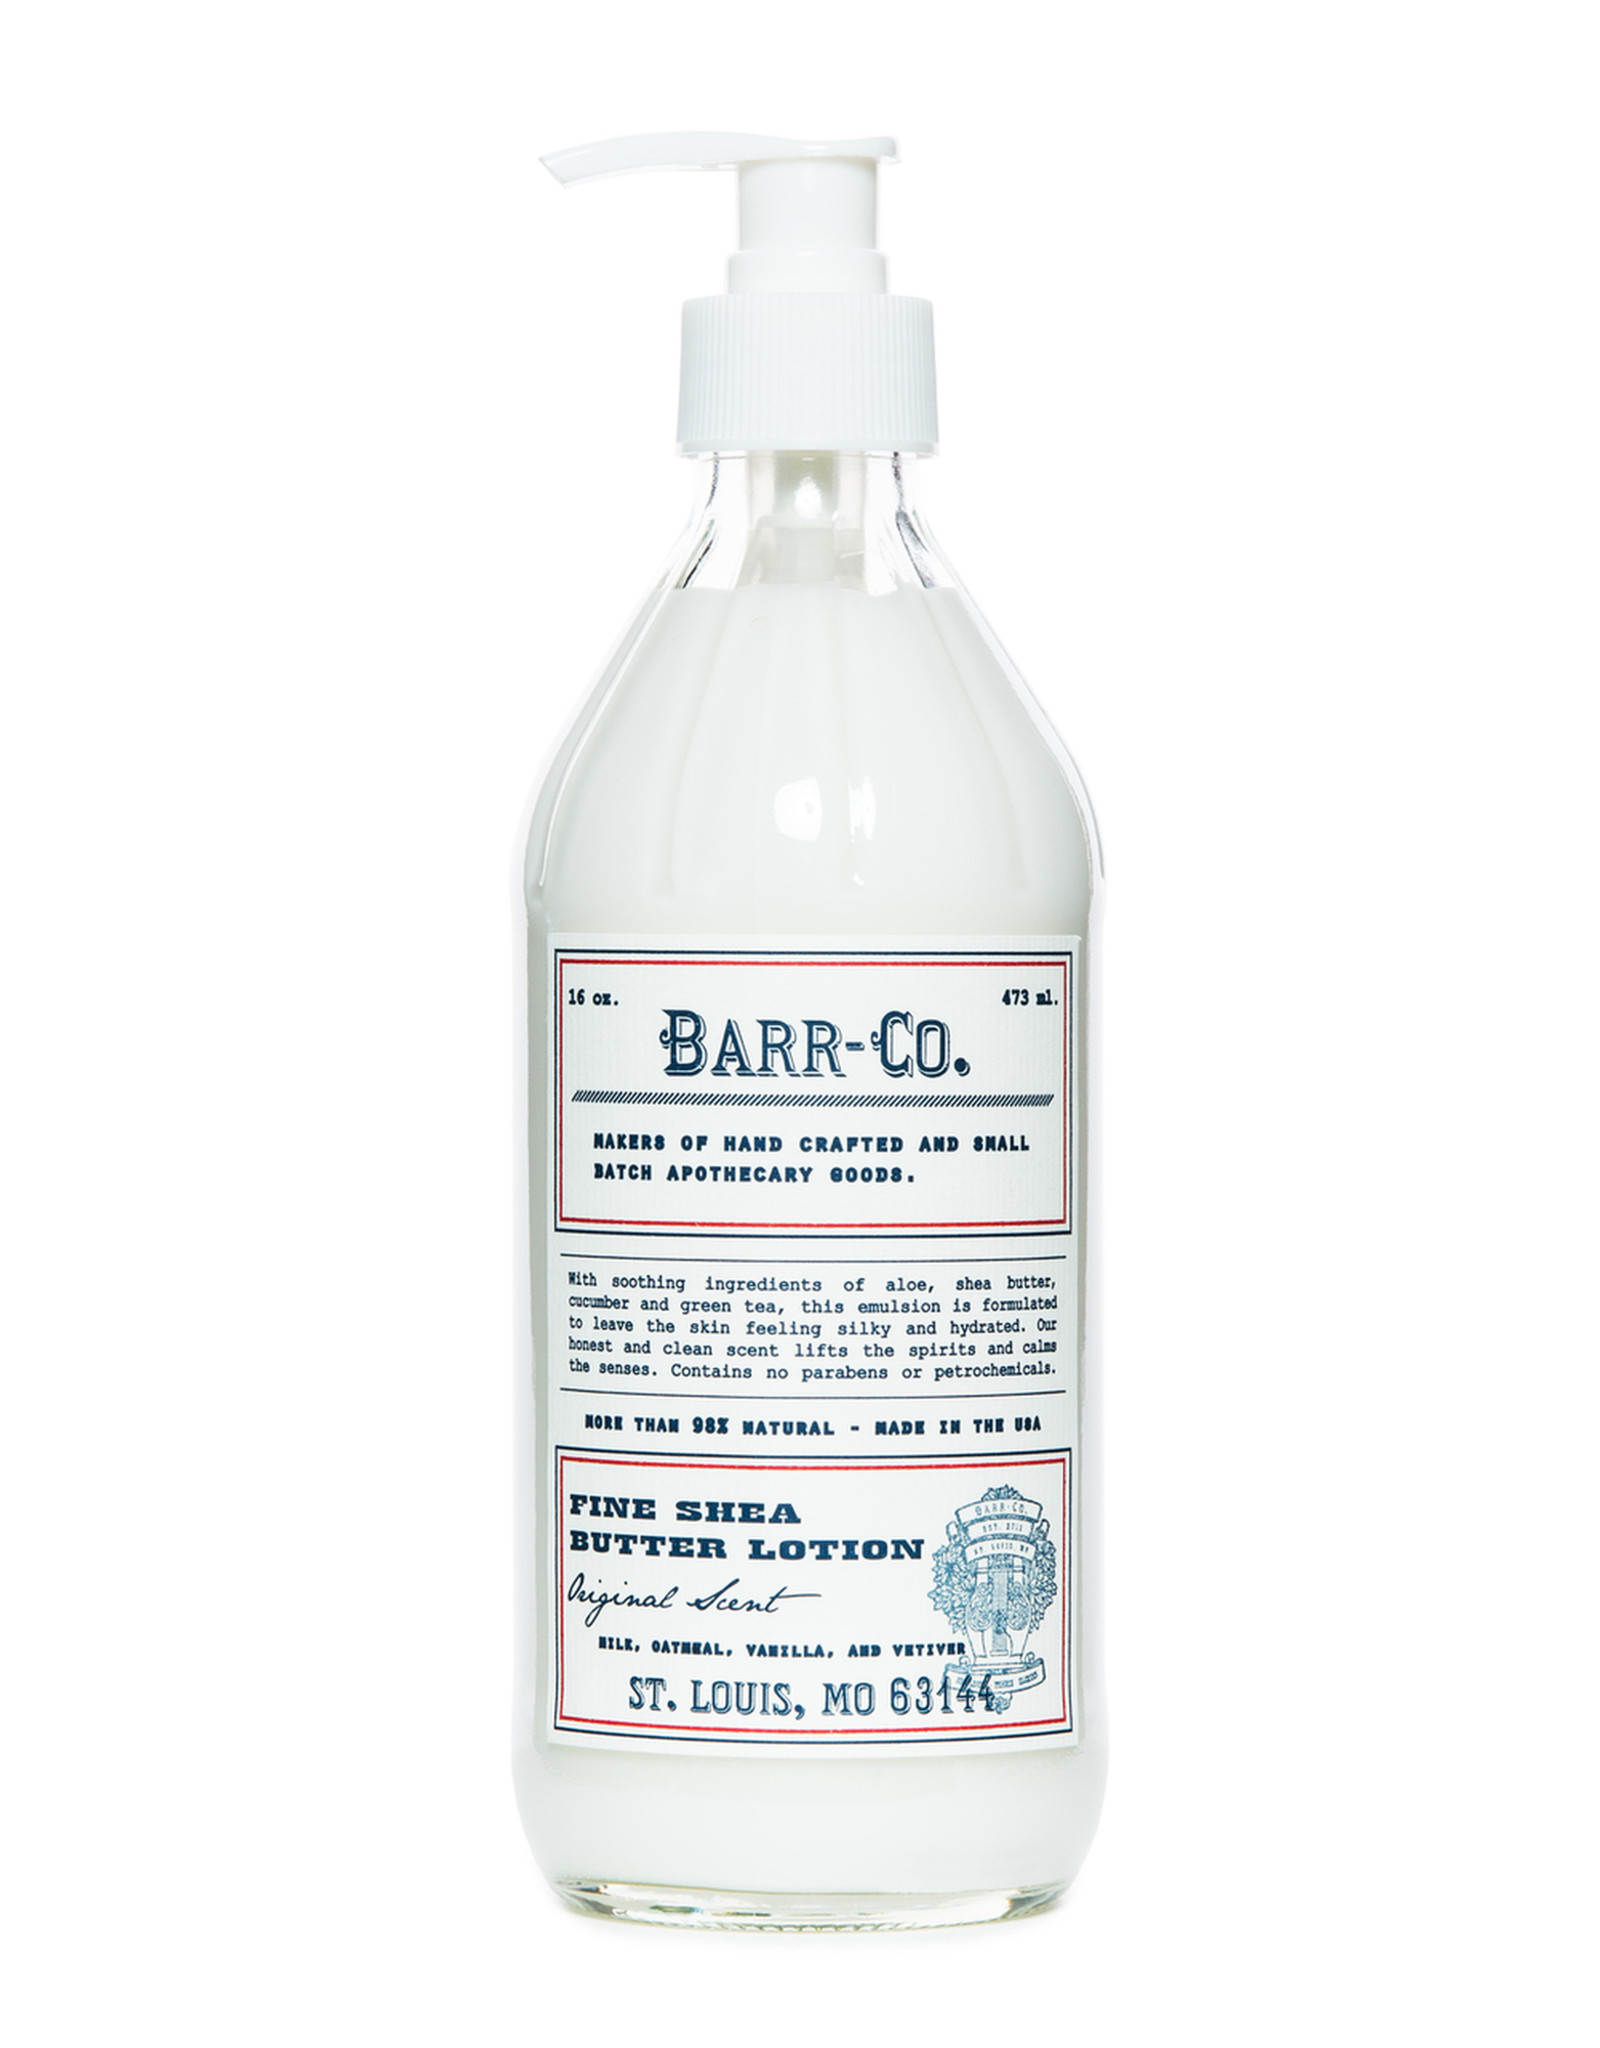 Barr-Co Hand & Body Shea Butter Lotion Original Scent